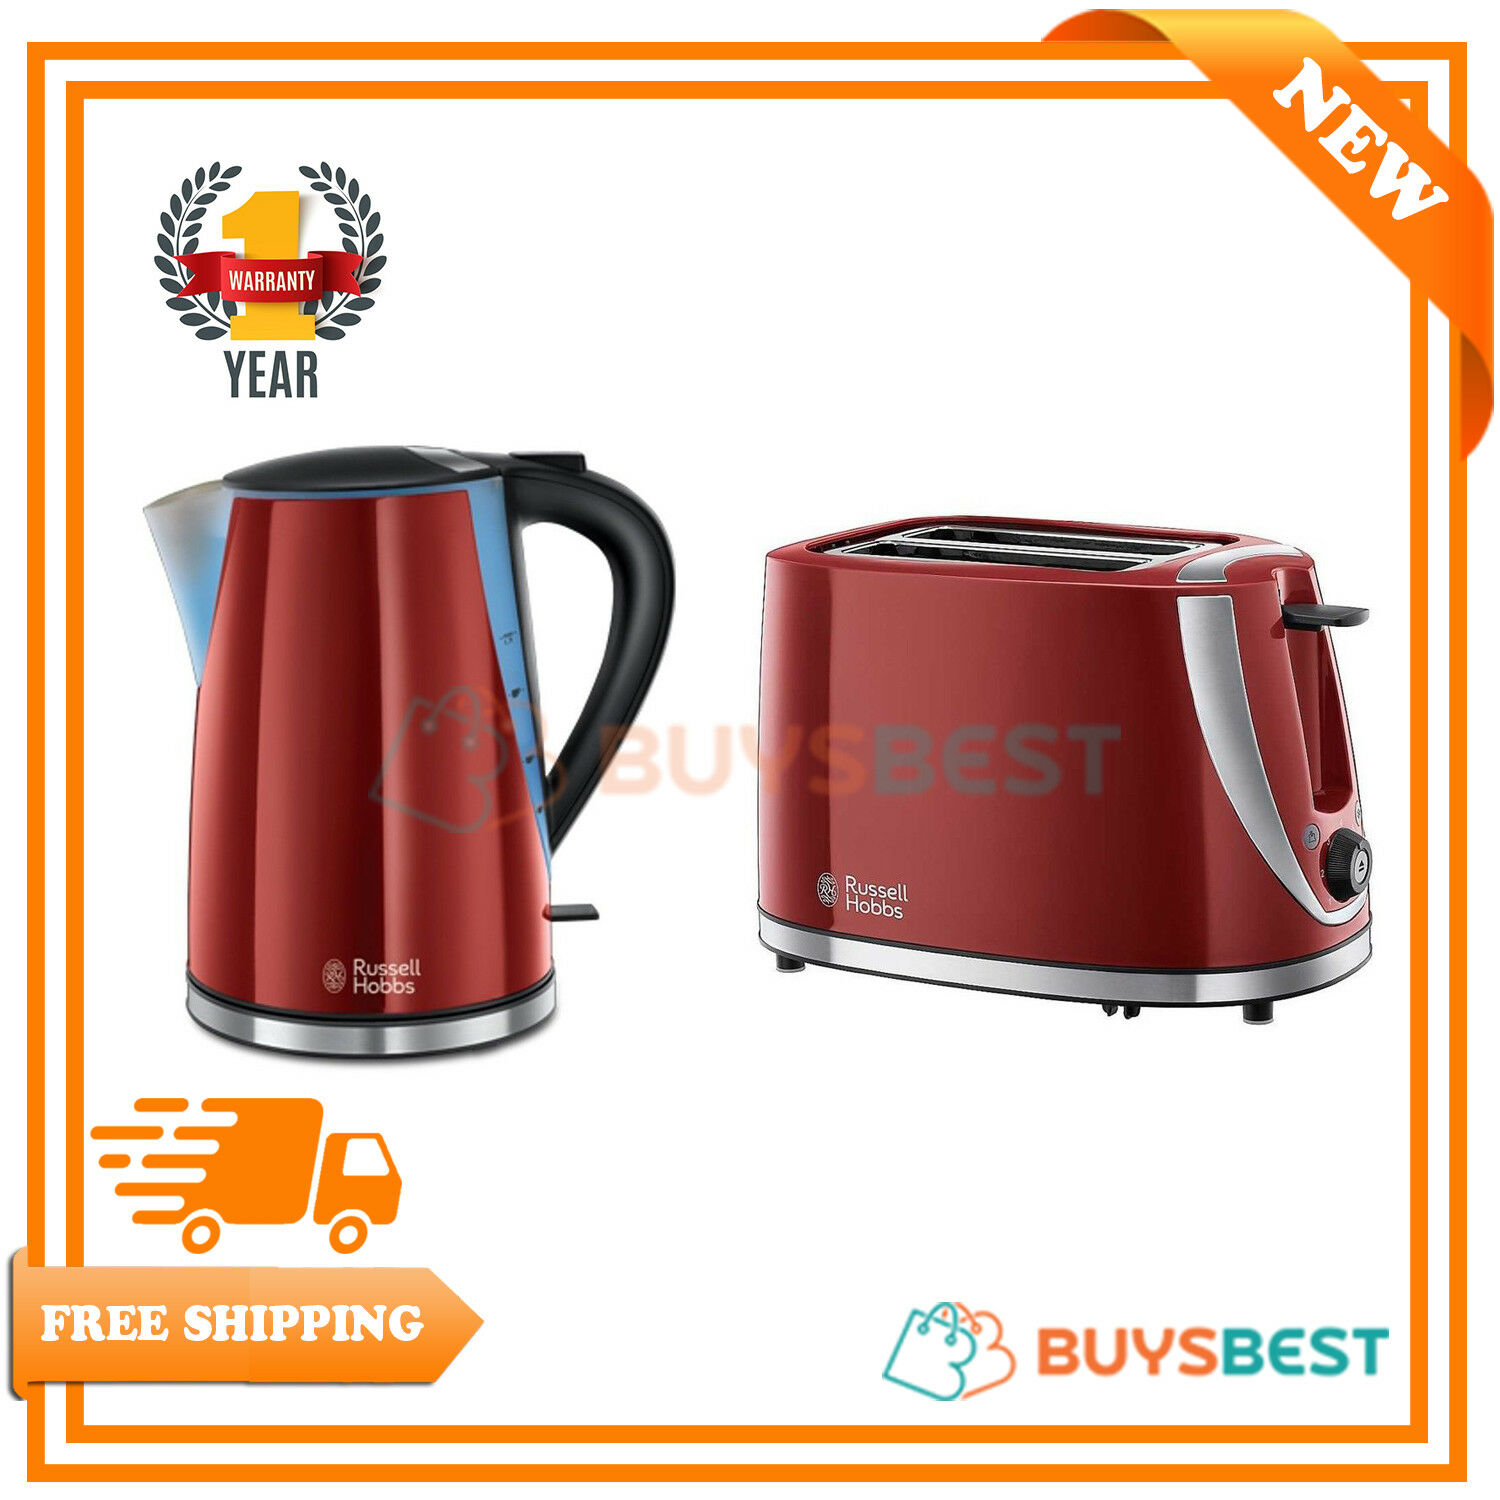 Russell Hobbs Mode 1.7 Ltr Jug Kettle & 2 Slice Toaster Set - Red